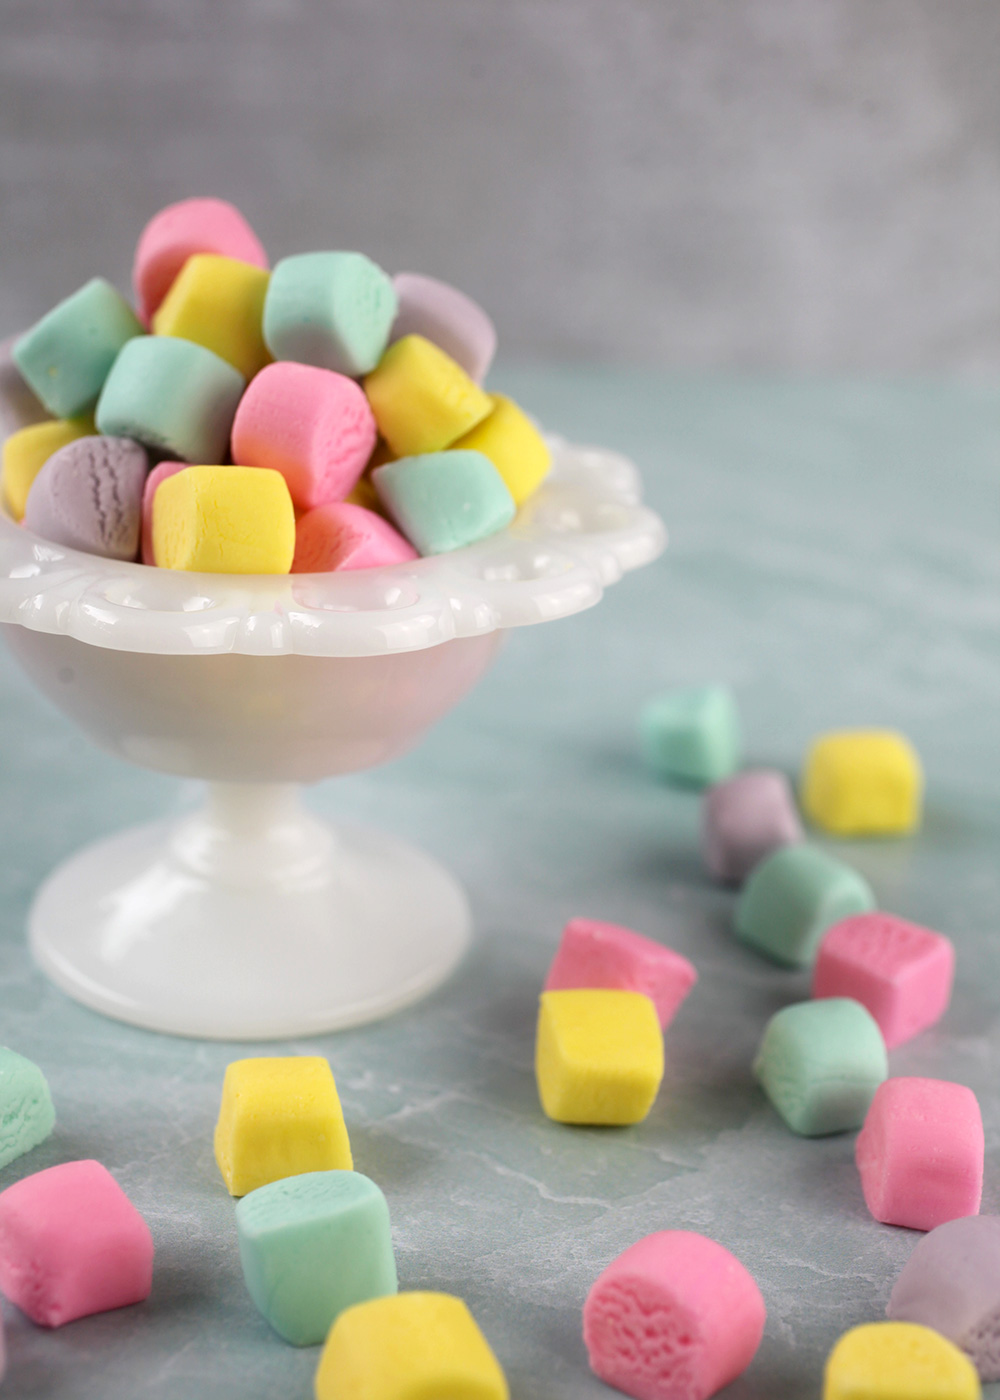 Homemade Butter Mints